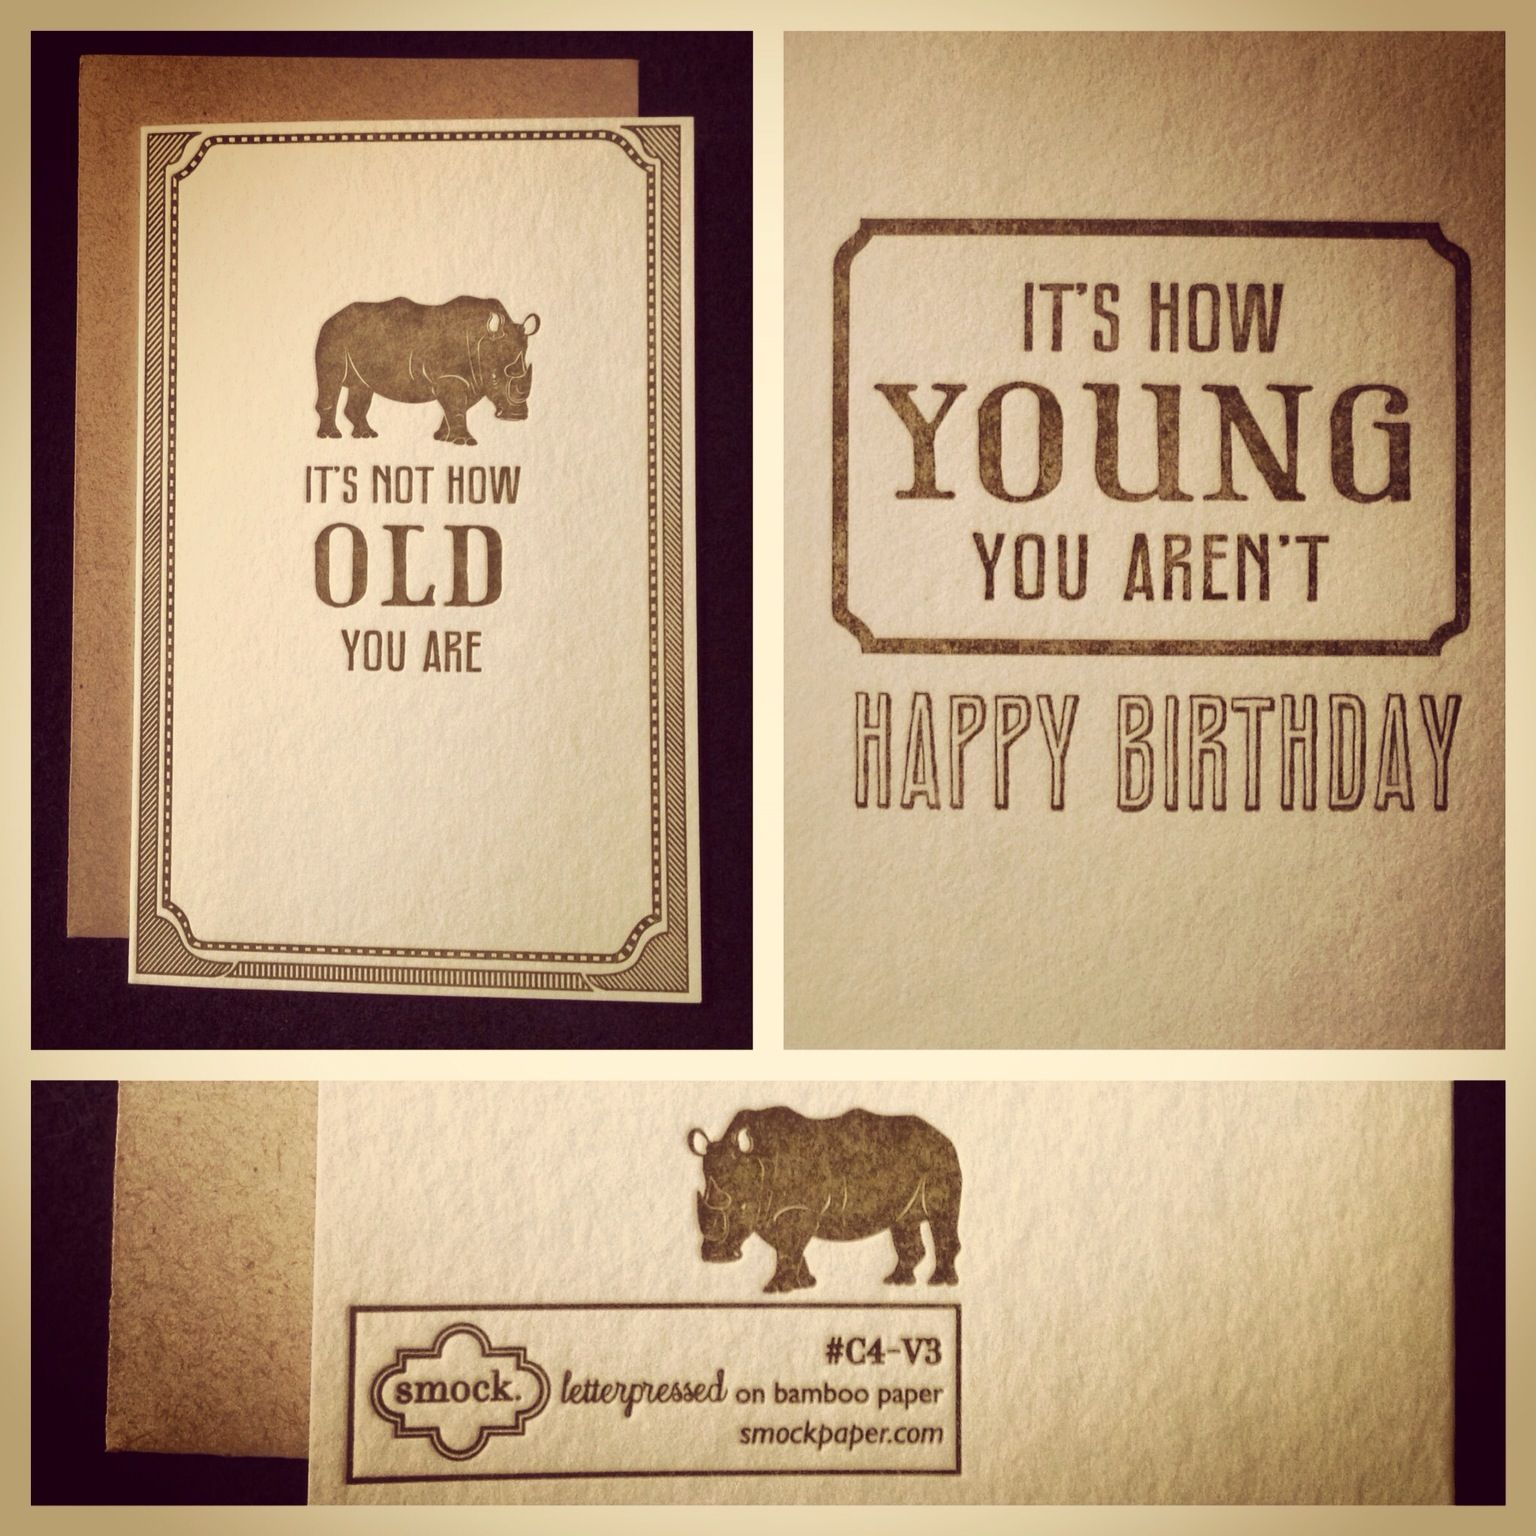 Day 25 - National Card & Letter Writing Month. It's not how old you are. INSIDE: It's how young you aren't. Happy Birthday. Made by Smock from Syracuse, New York, USA. $4.00 #nclwm2013 #shescreative #letterpress #greetingcard #smock #rhino #old #stationery #happybirthday #newyork #USA